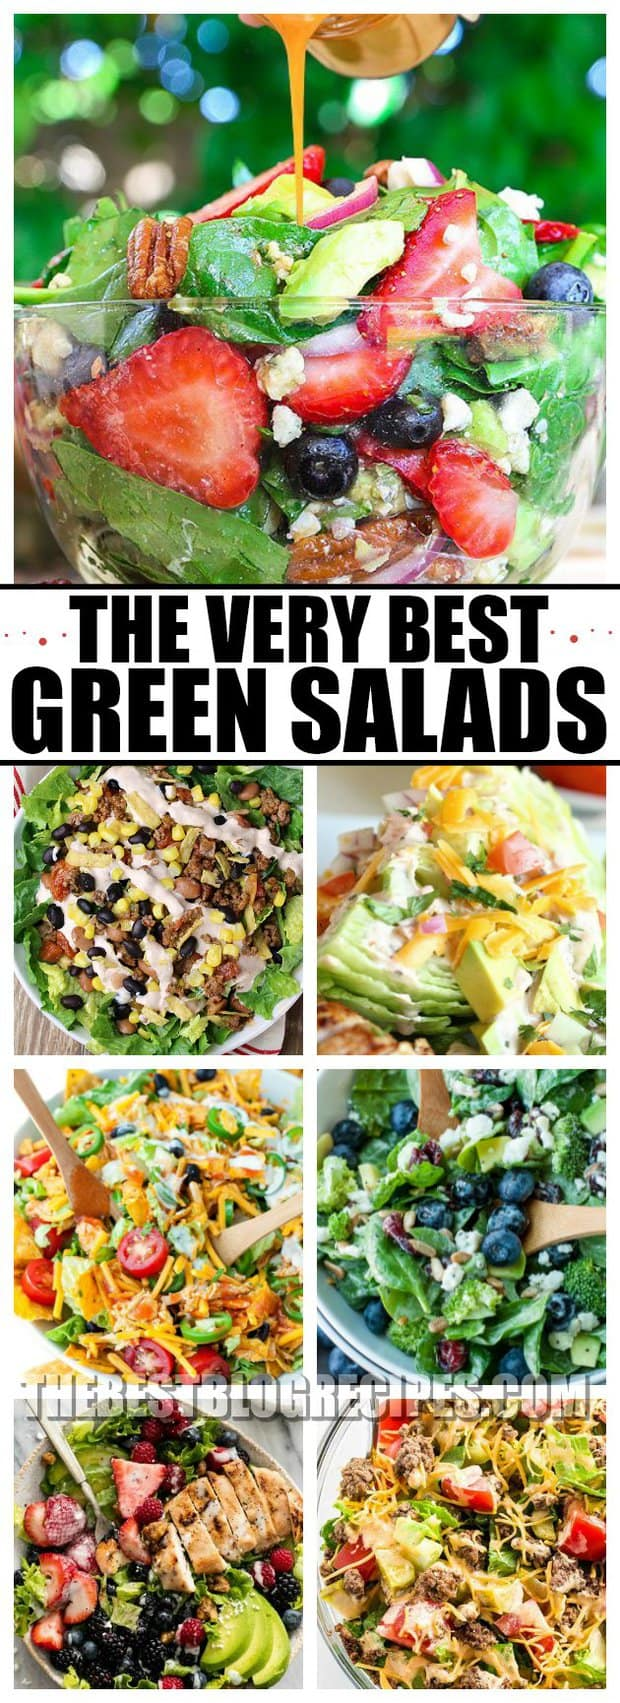 THE VERY BEST GREEN SALADS